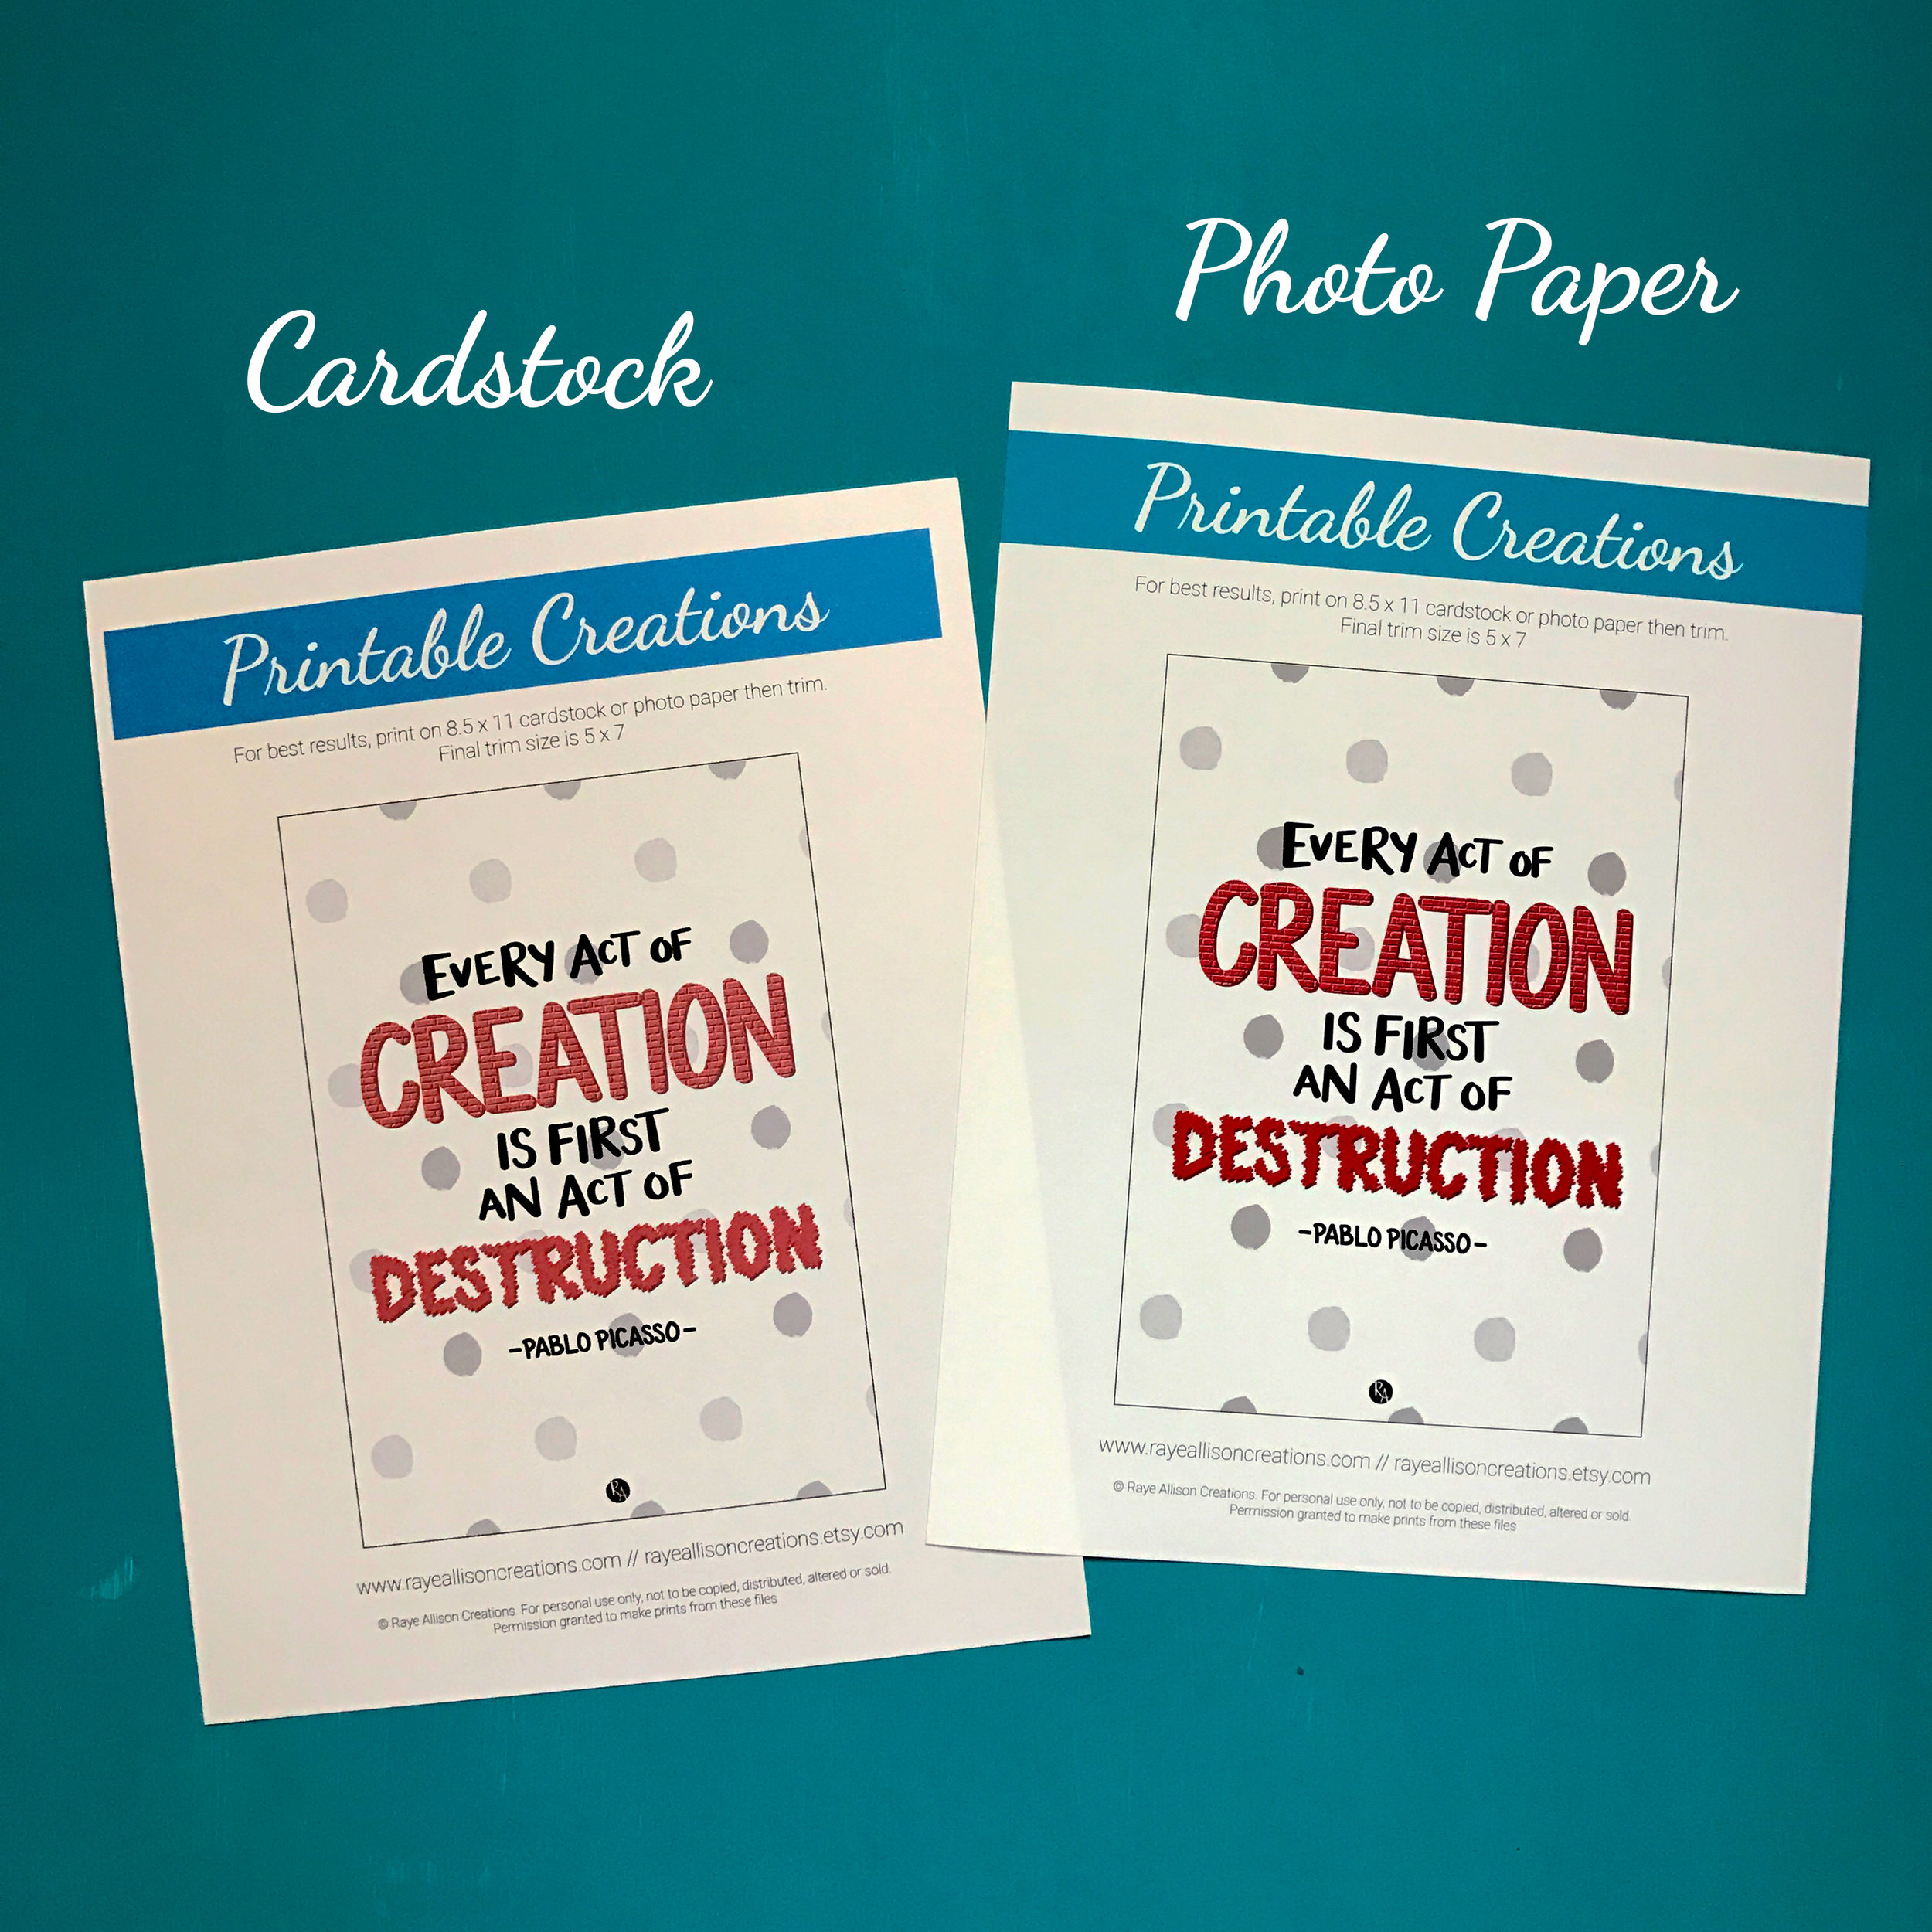 Examples of my latest printable on cardstock and photo paper.